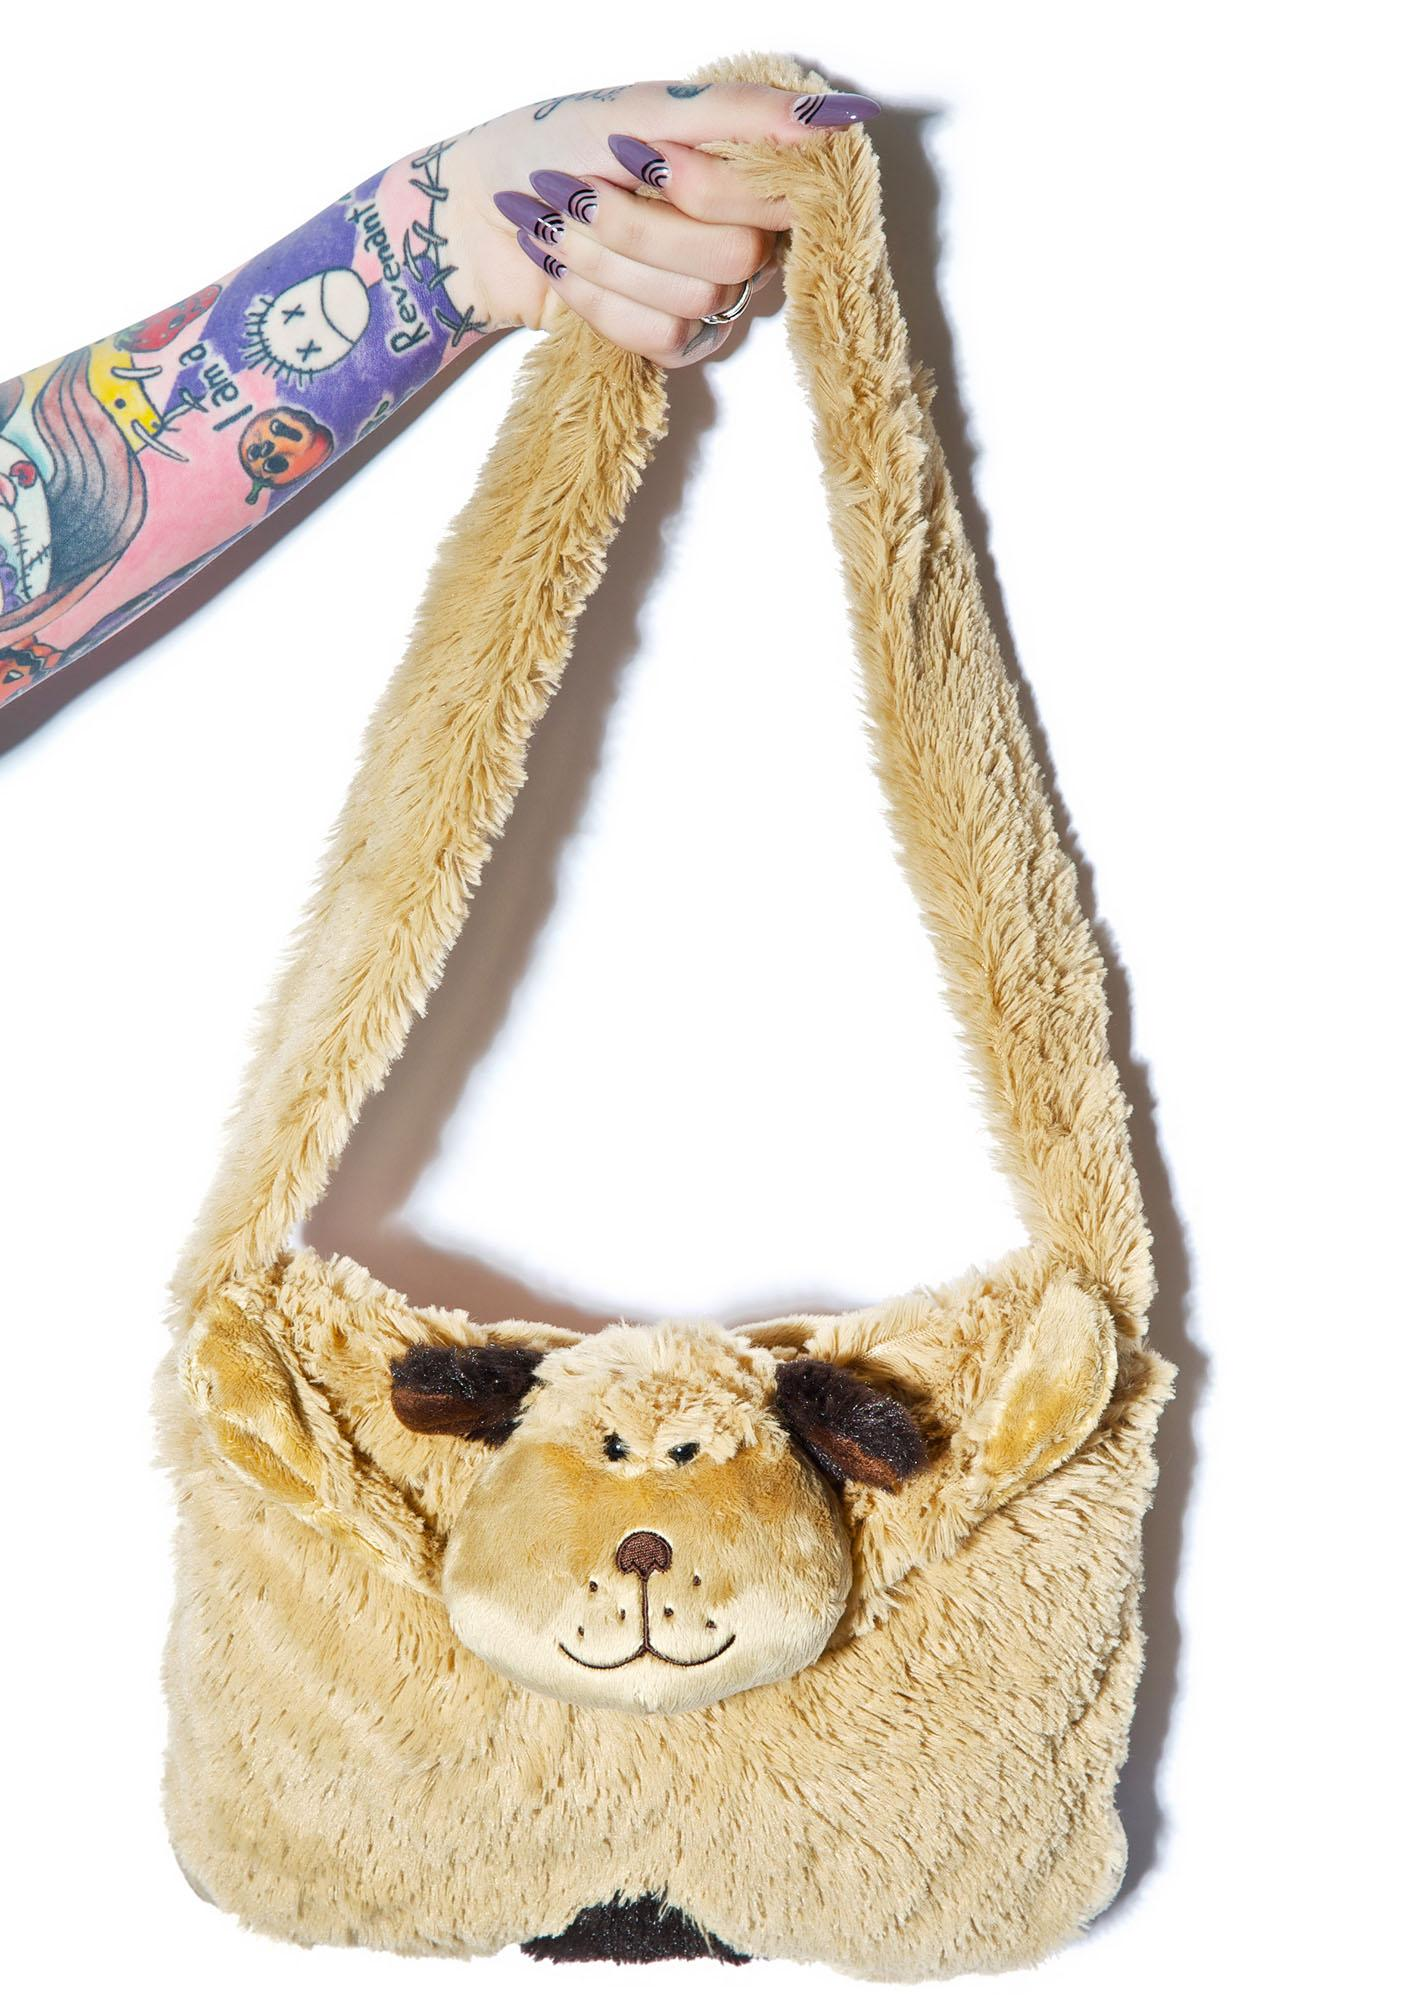 Pillow Pets Snuggly Puppy Purse